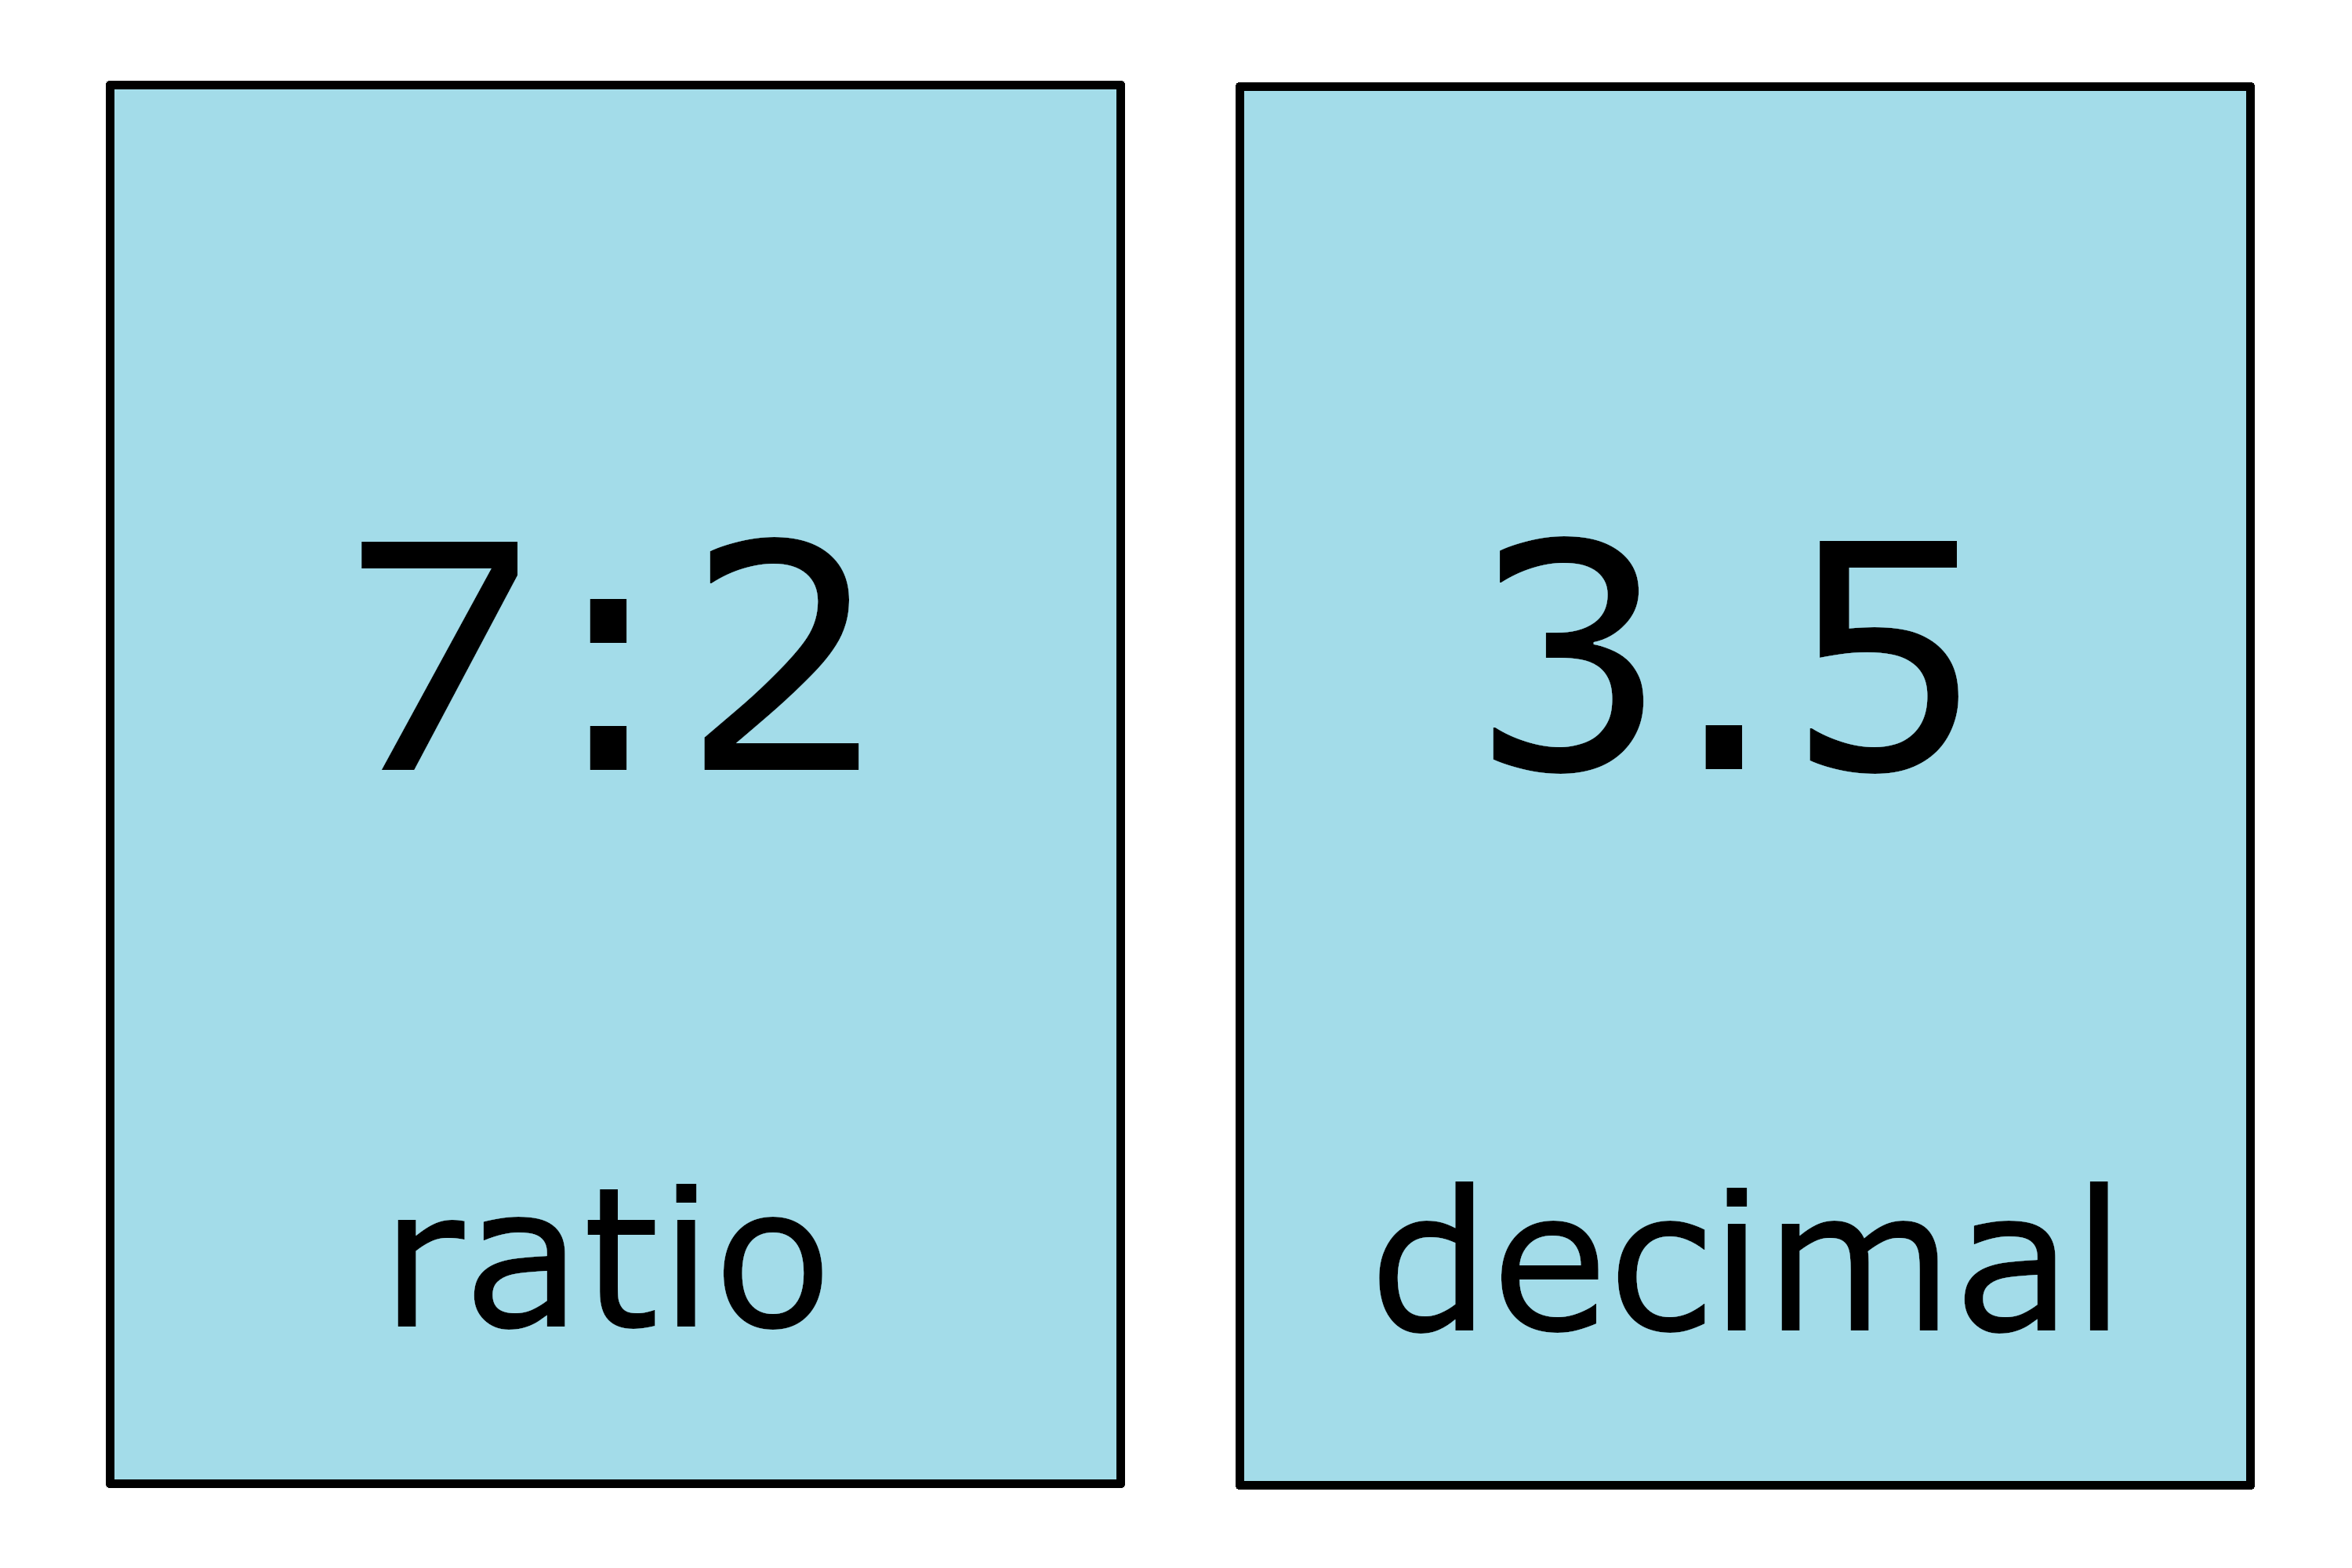 illustration showing how to rewrite the ratio 7:2 as a decimal 3.5